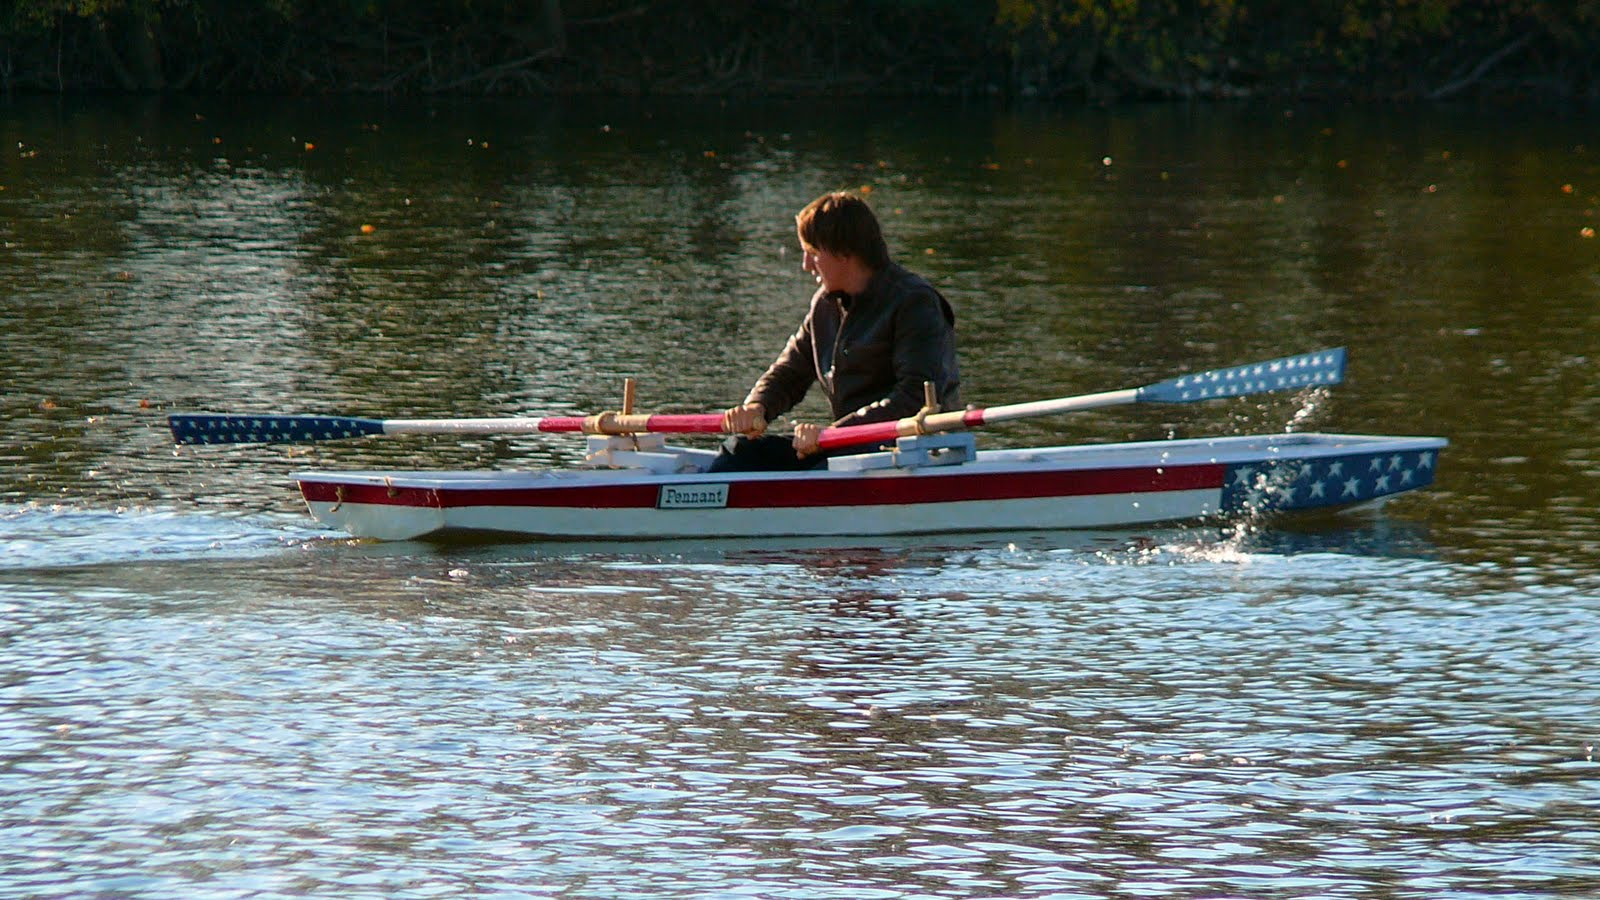 ROWING FOR PLEASURE: Oar length